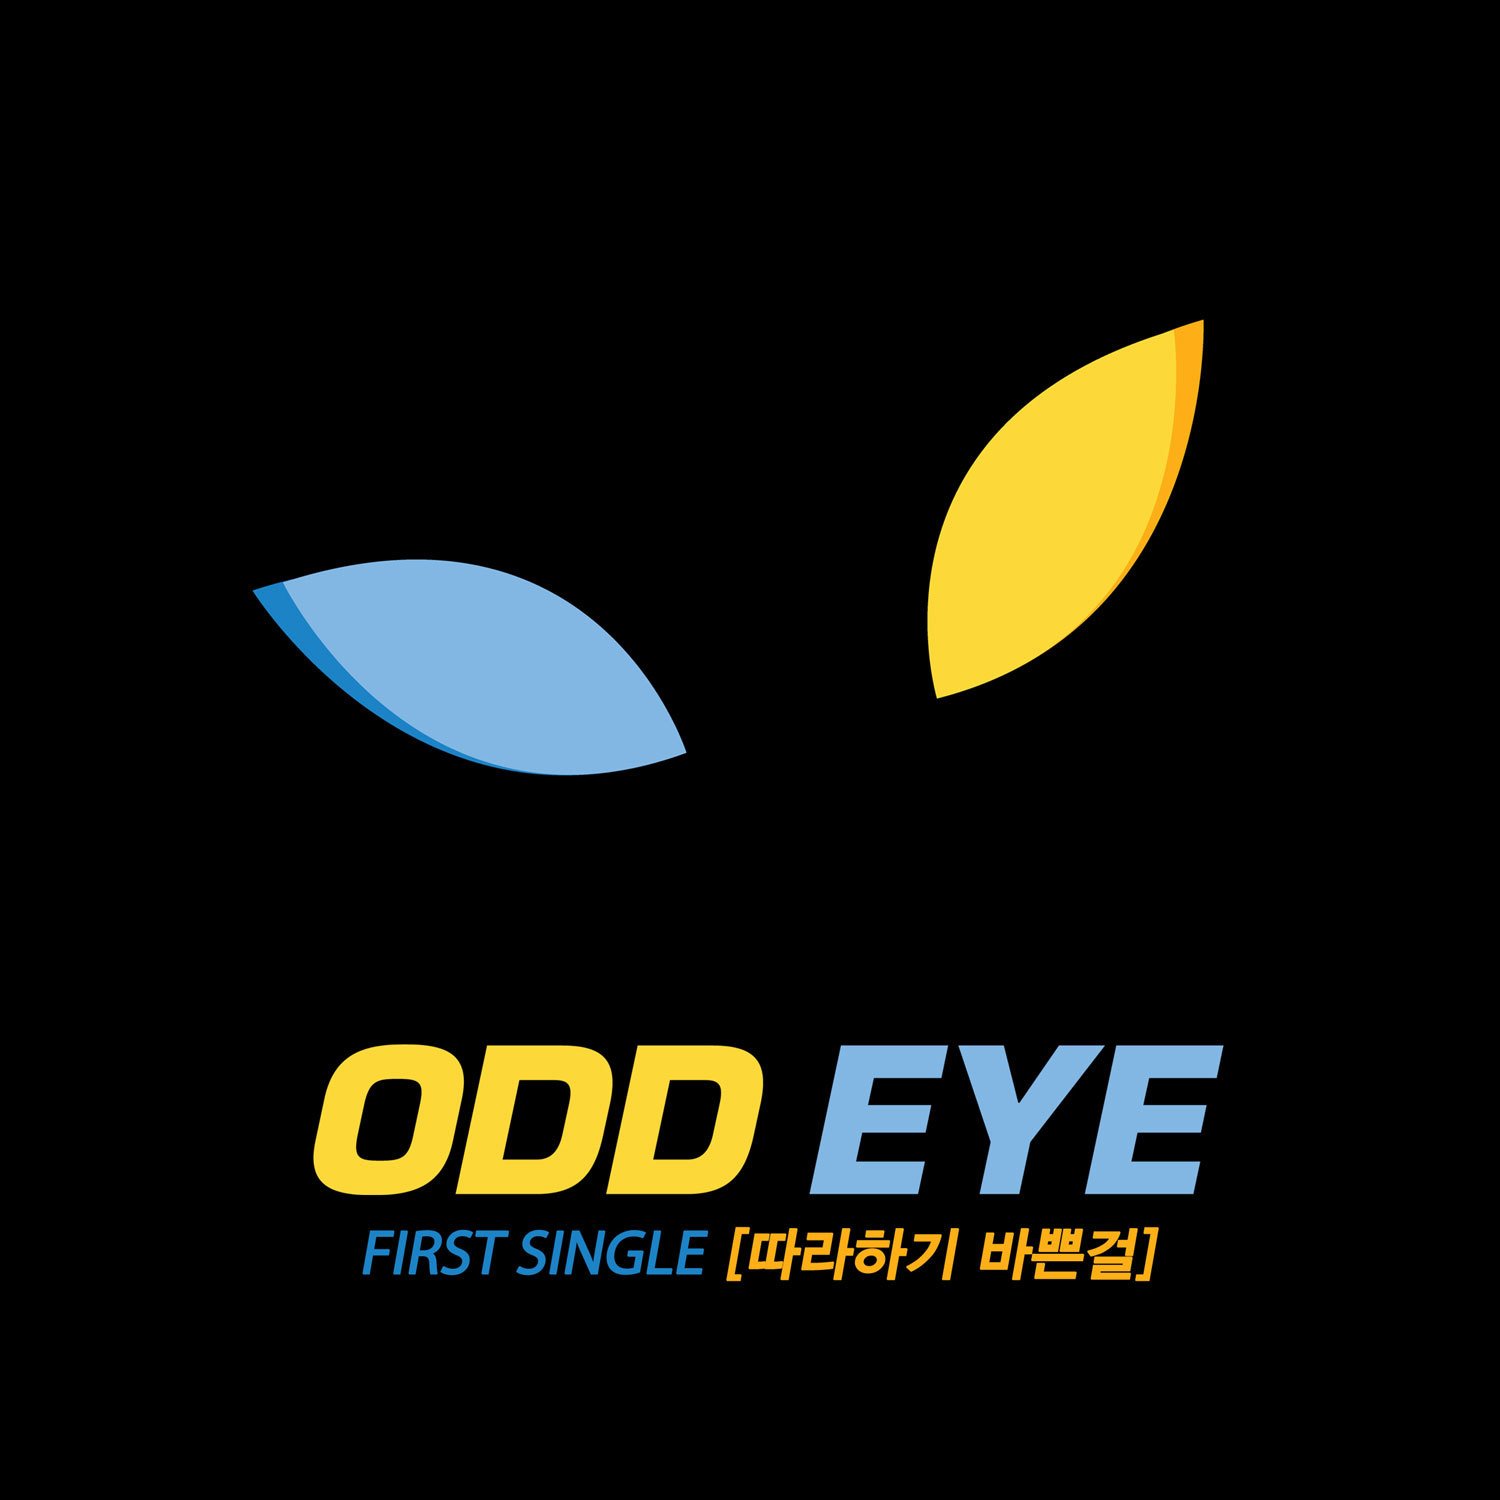 Odd Eye 1st Single Album '따라하기 바쁜걸'